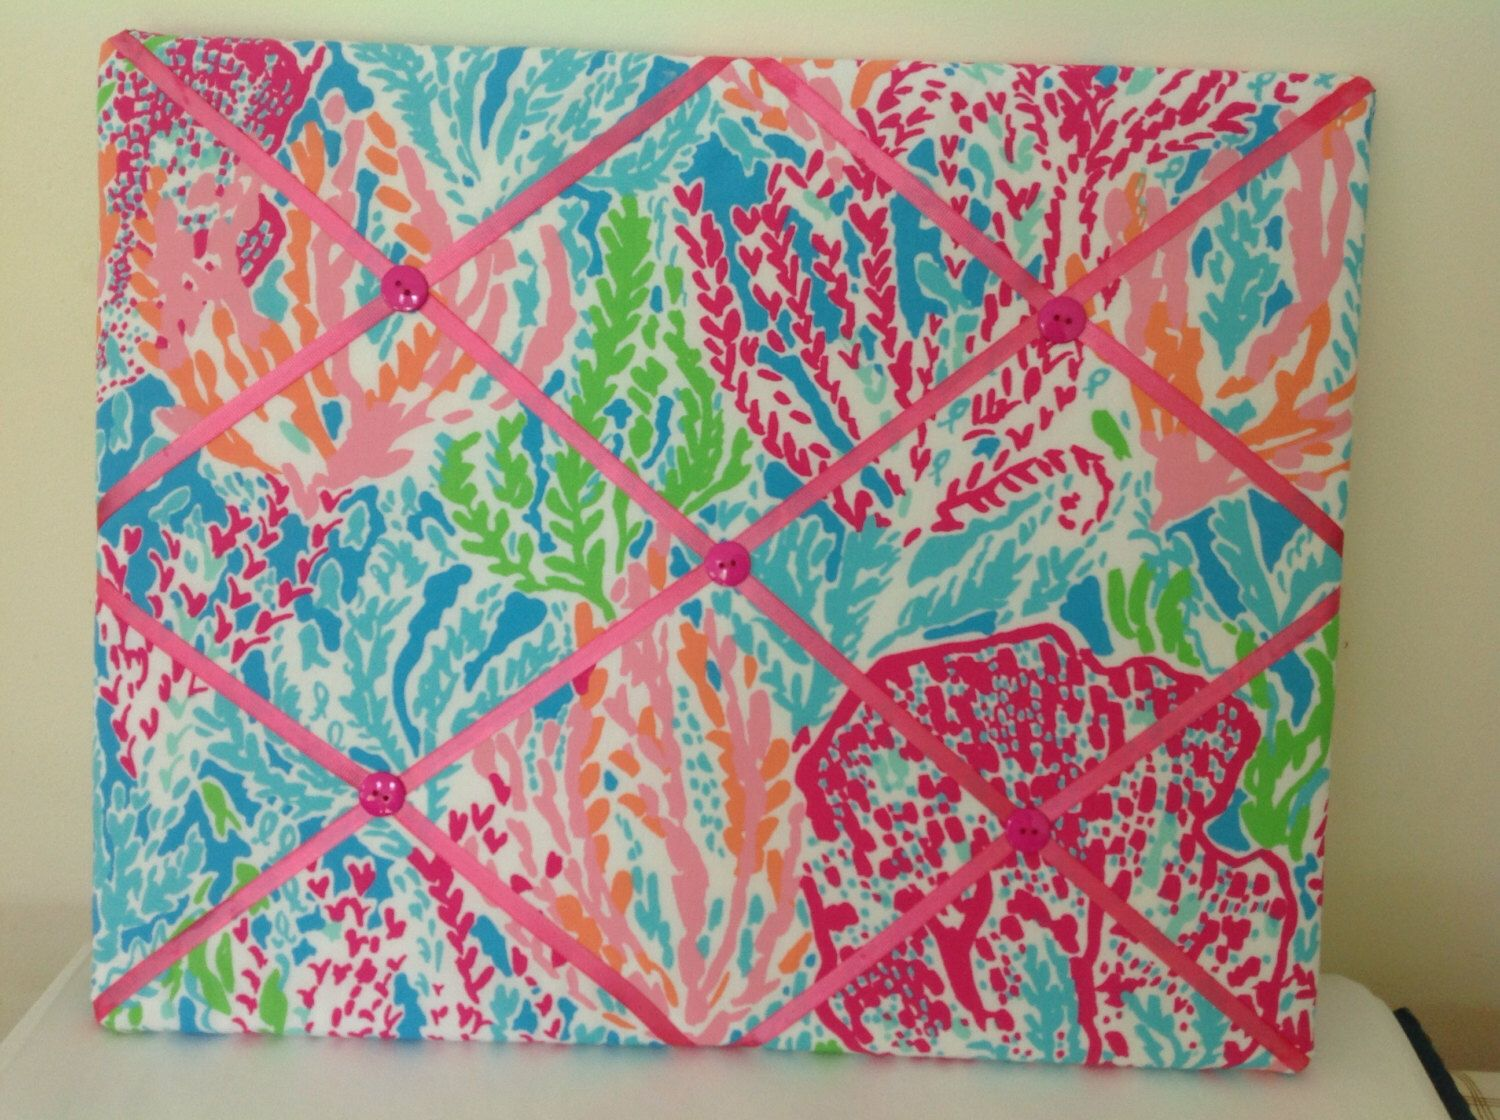 Lilly pulitzer fabric covered memo board in lets cha cha